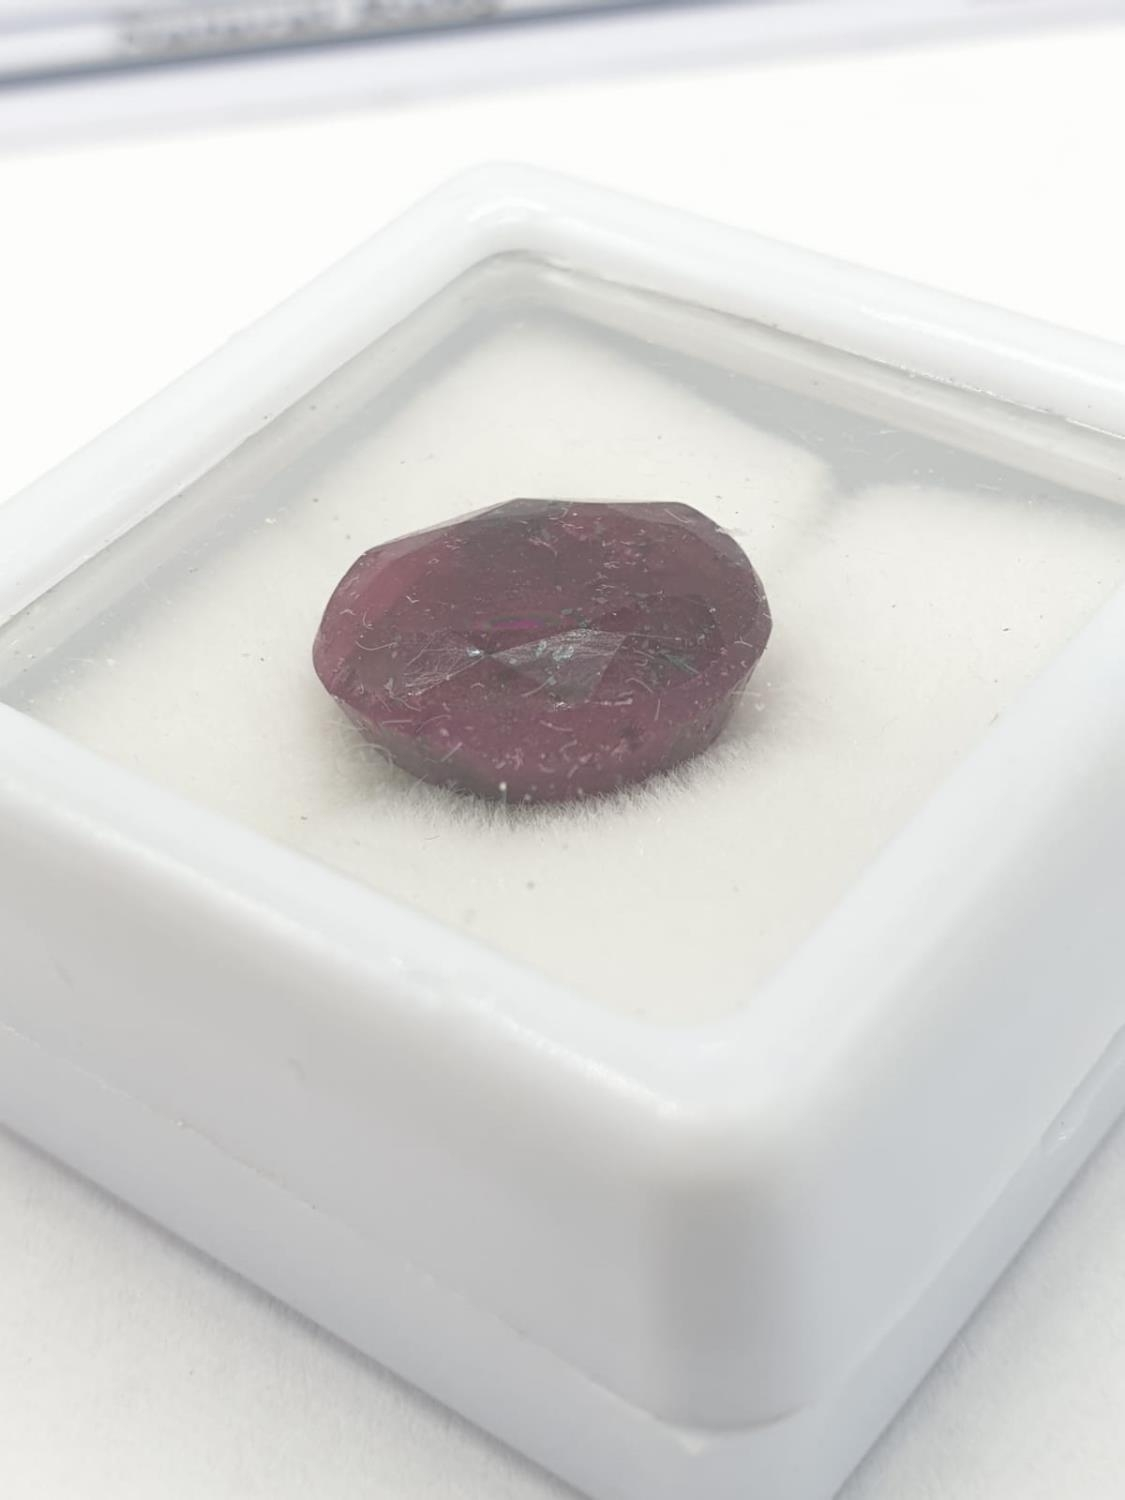 8.20 Cts Natural ruby. Oval mixed cut stone. Good colour. GLI certification included. - Image 2 of 4